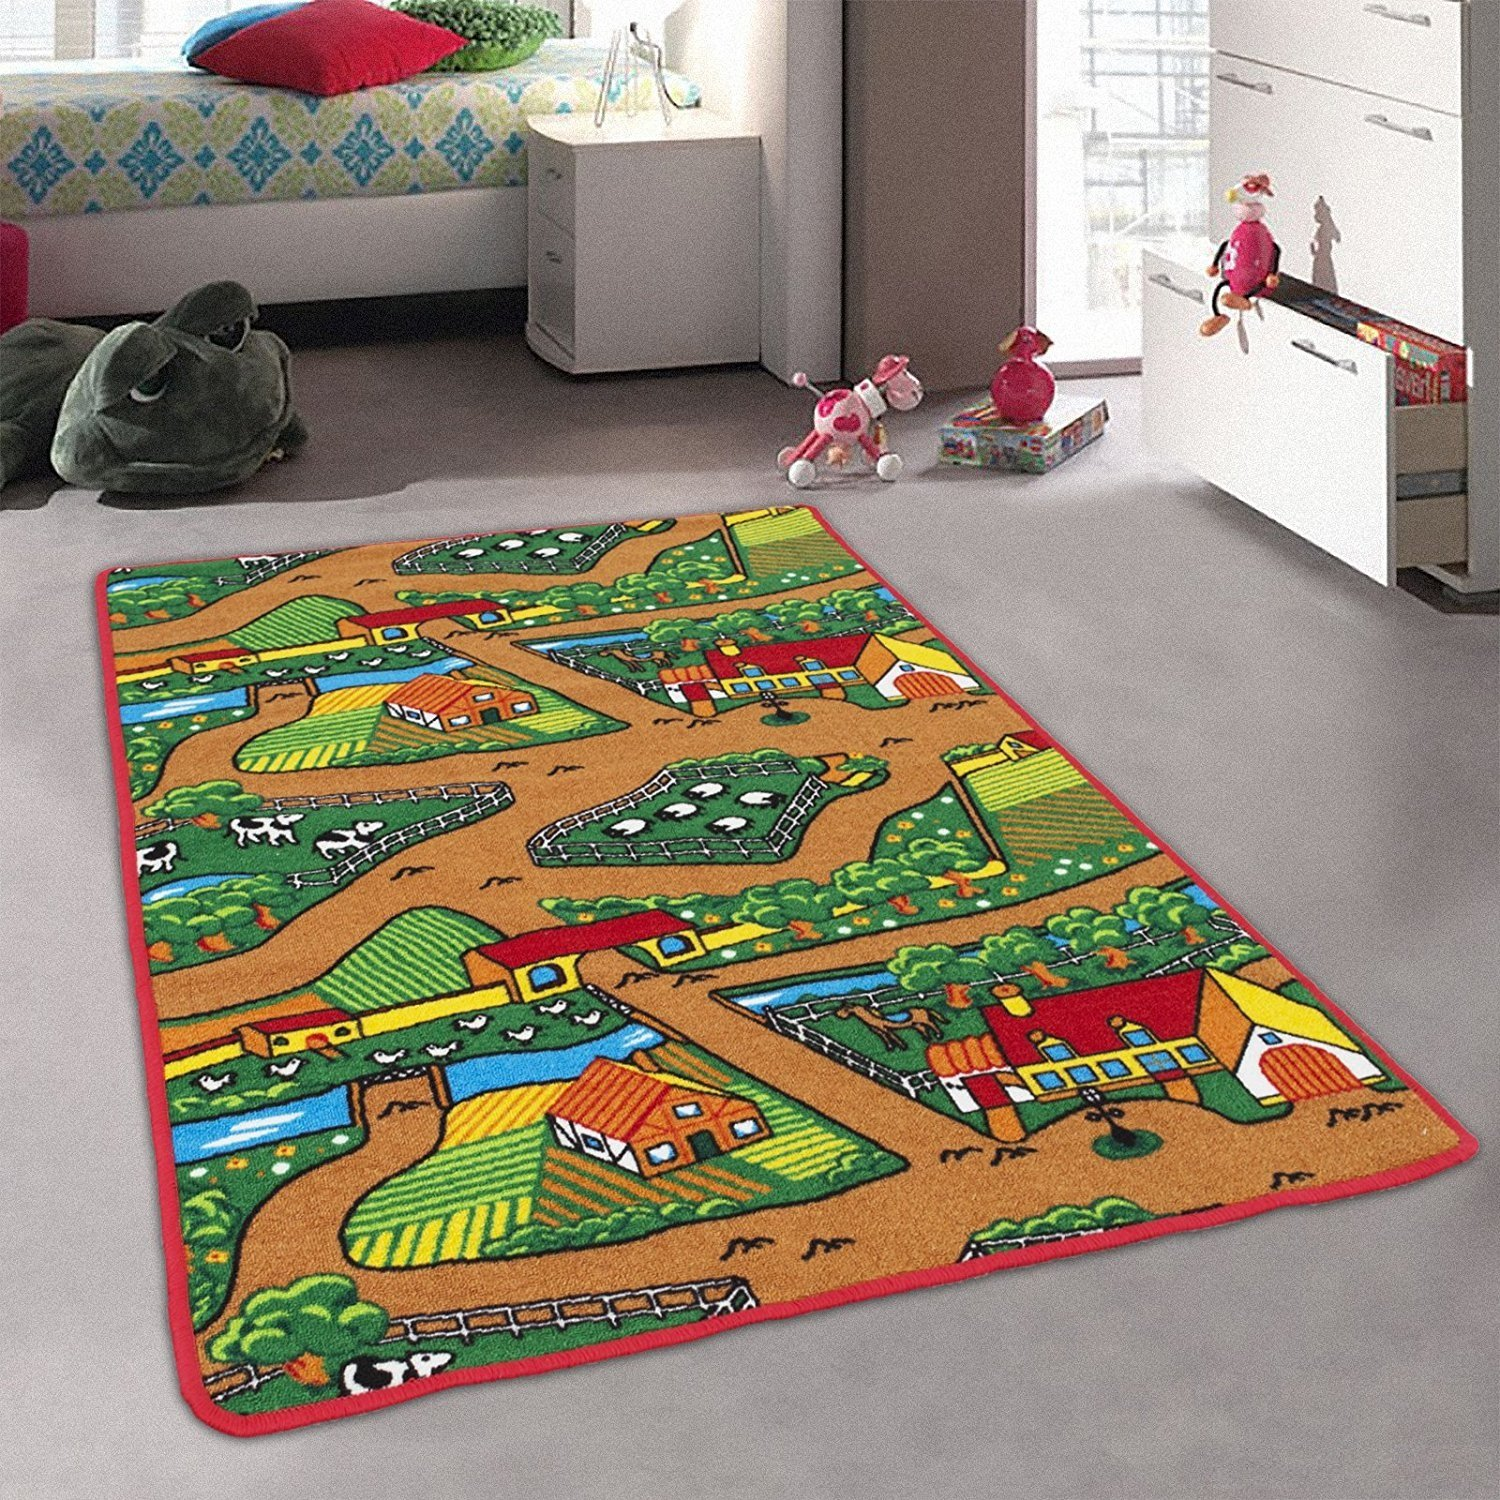 CR's Colorful Animal Farm Area Rugs Carpet Farm Landscape Modern Carpet Floor Rugs Mat for Children Kids (3 Feet x 5 Feet)